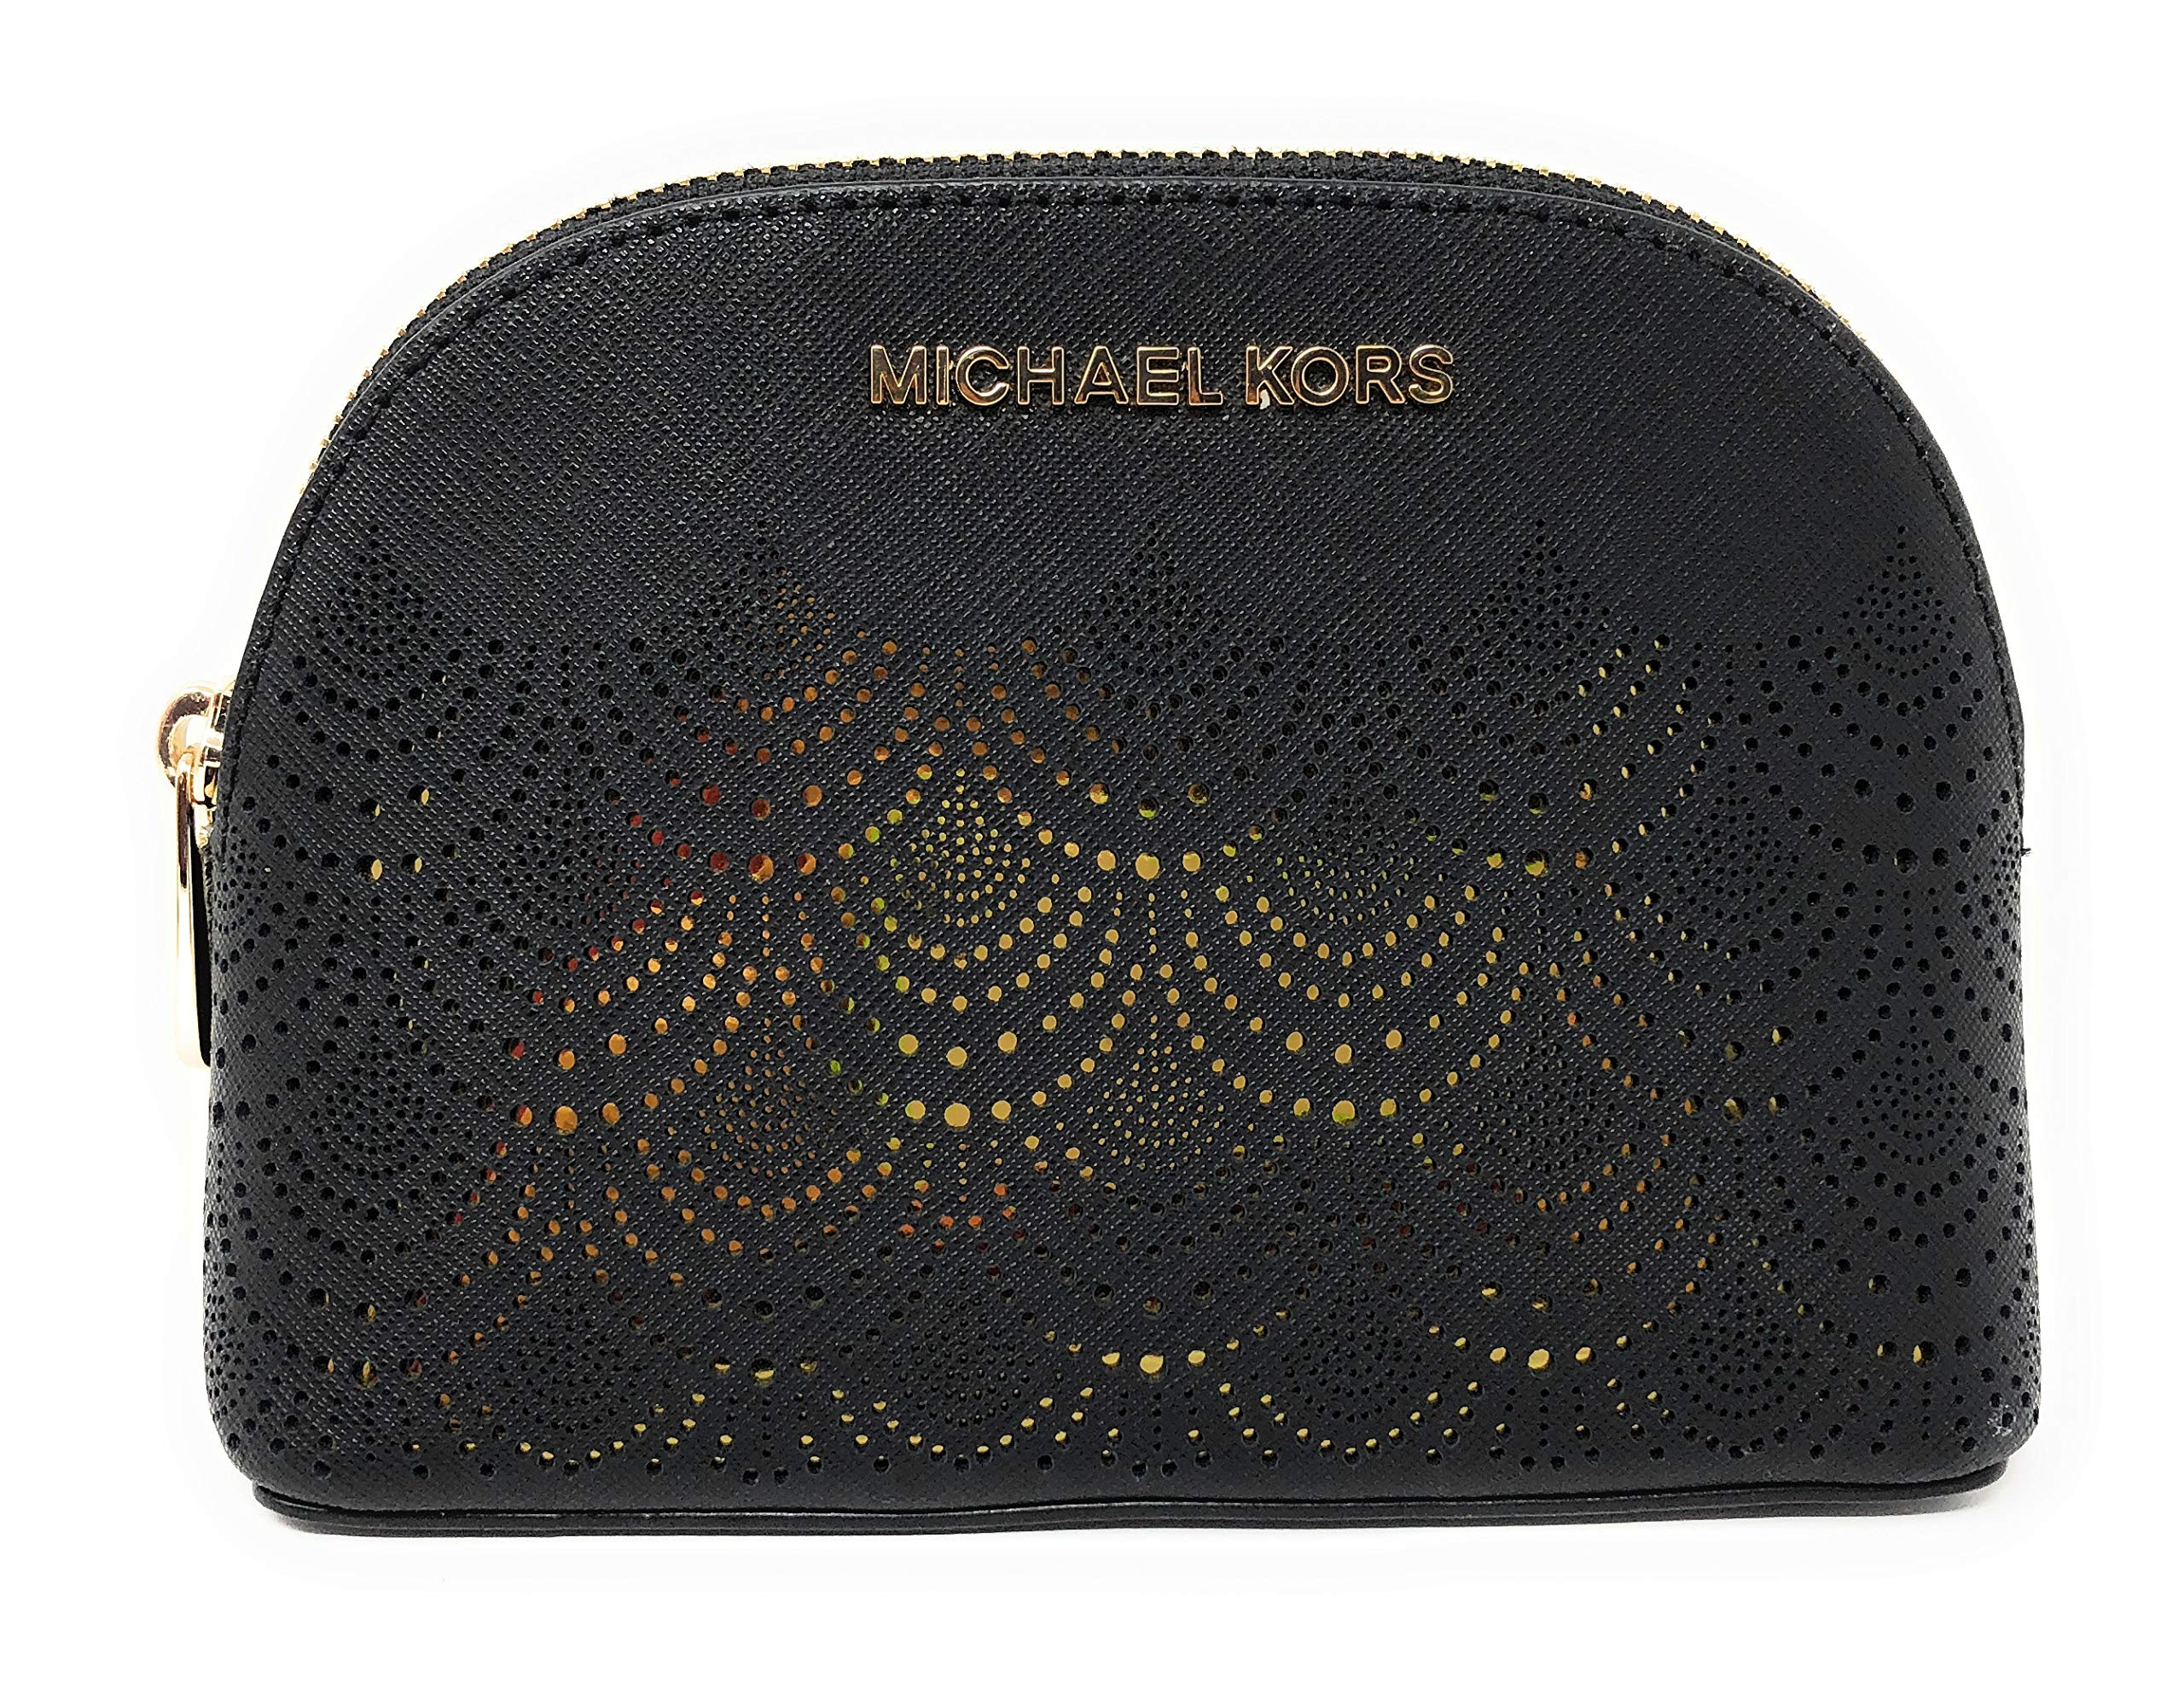 Michael Kors Jet Set Travel Saffiano Leather Lace Cosmetic Travel Pouch in Black